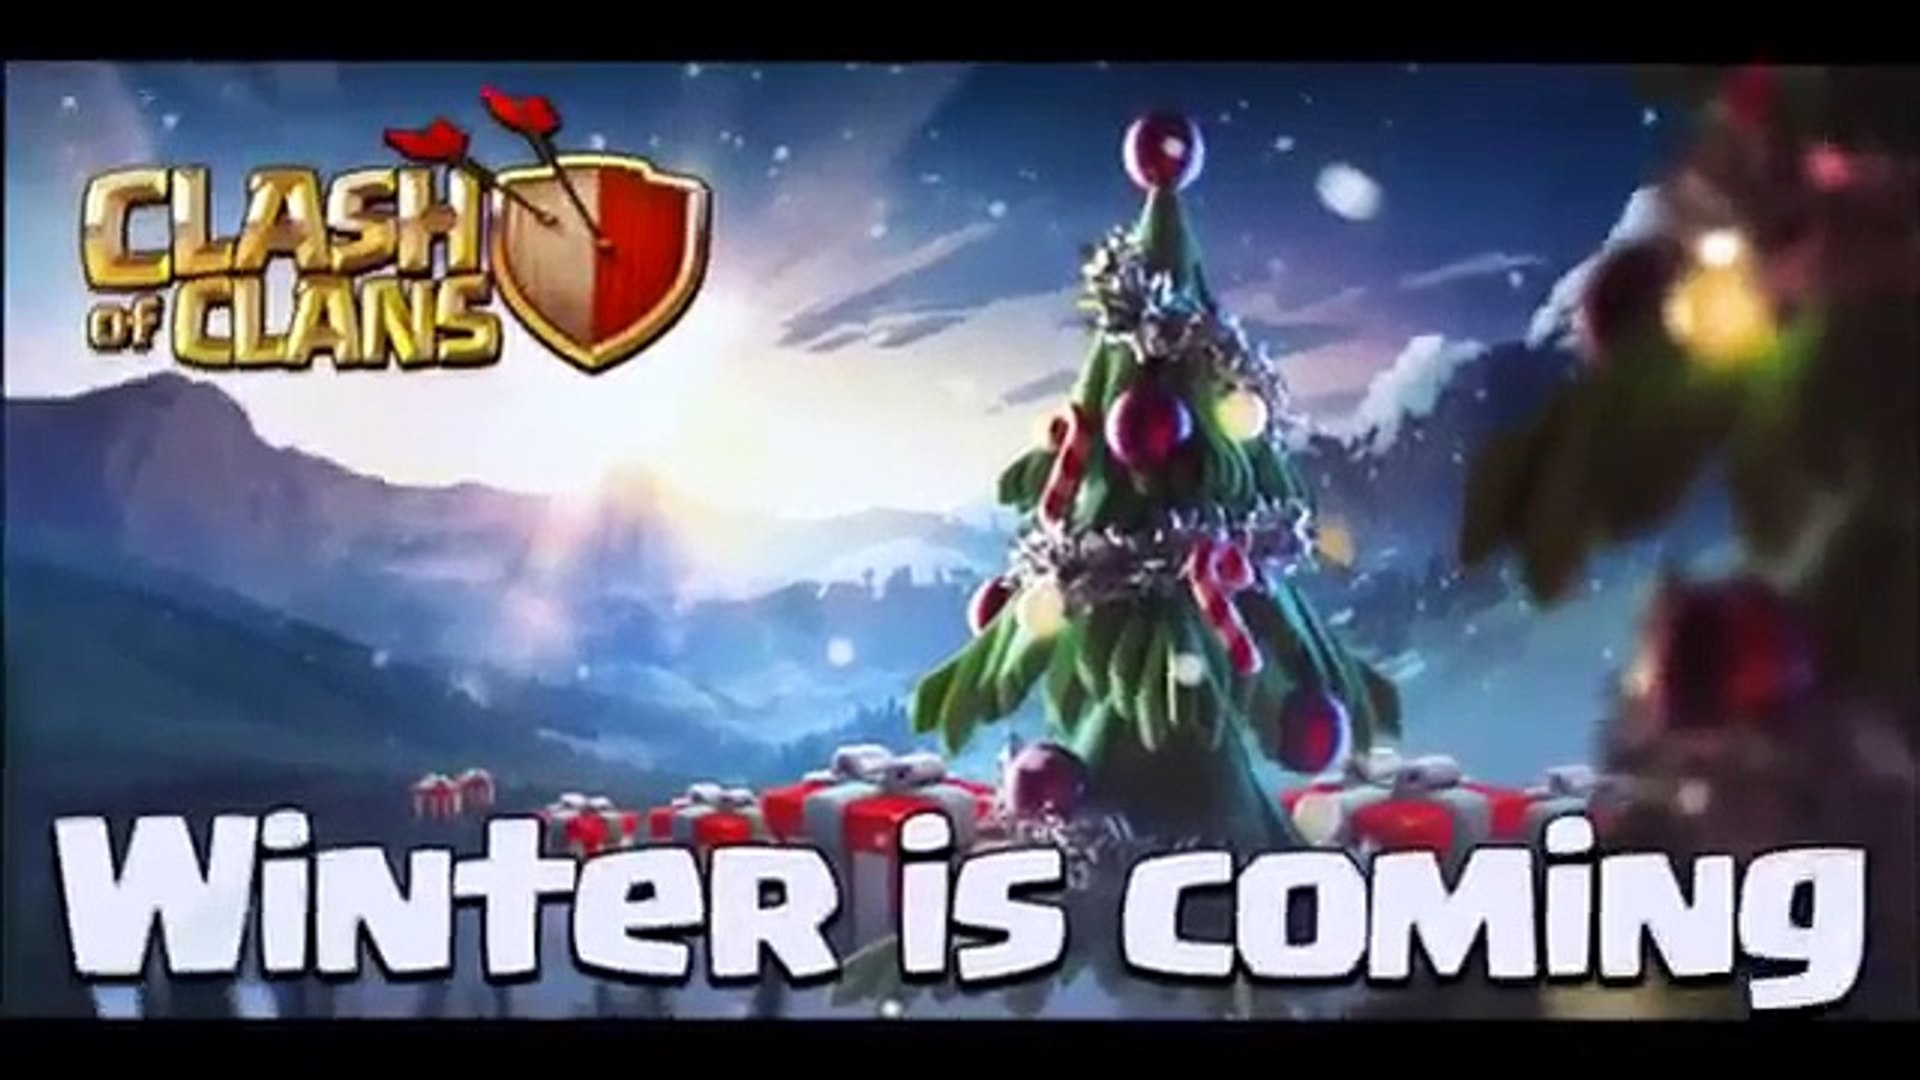 Clash Of Clans Christmas Trees In Order.Clash Of Clans New Christmas Update Sneak Peek New Christmas Tree